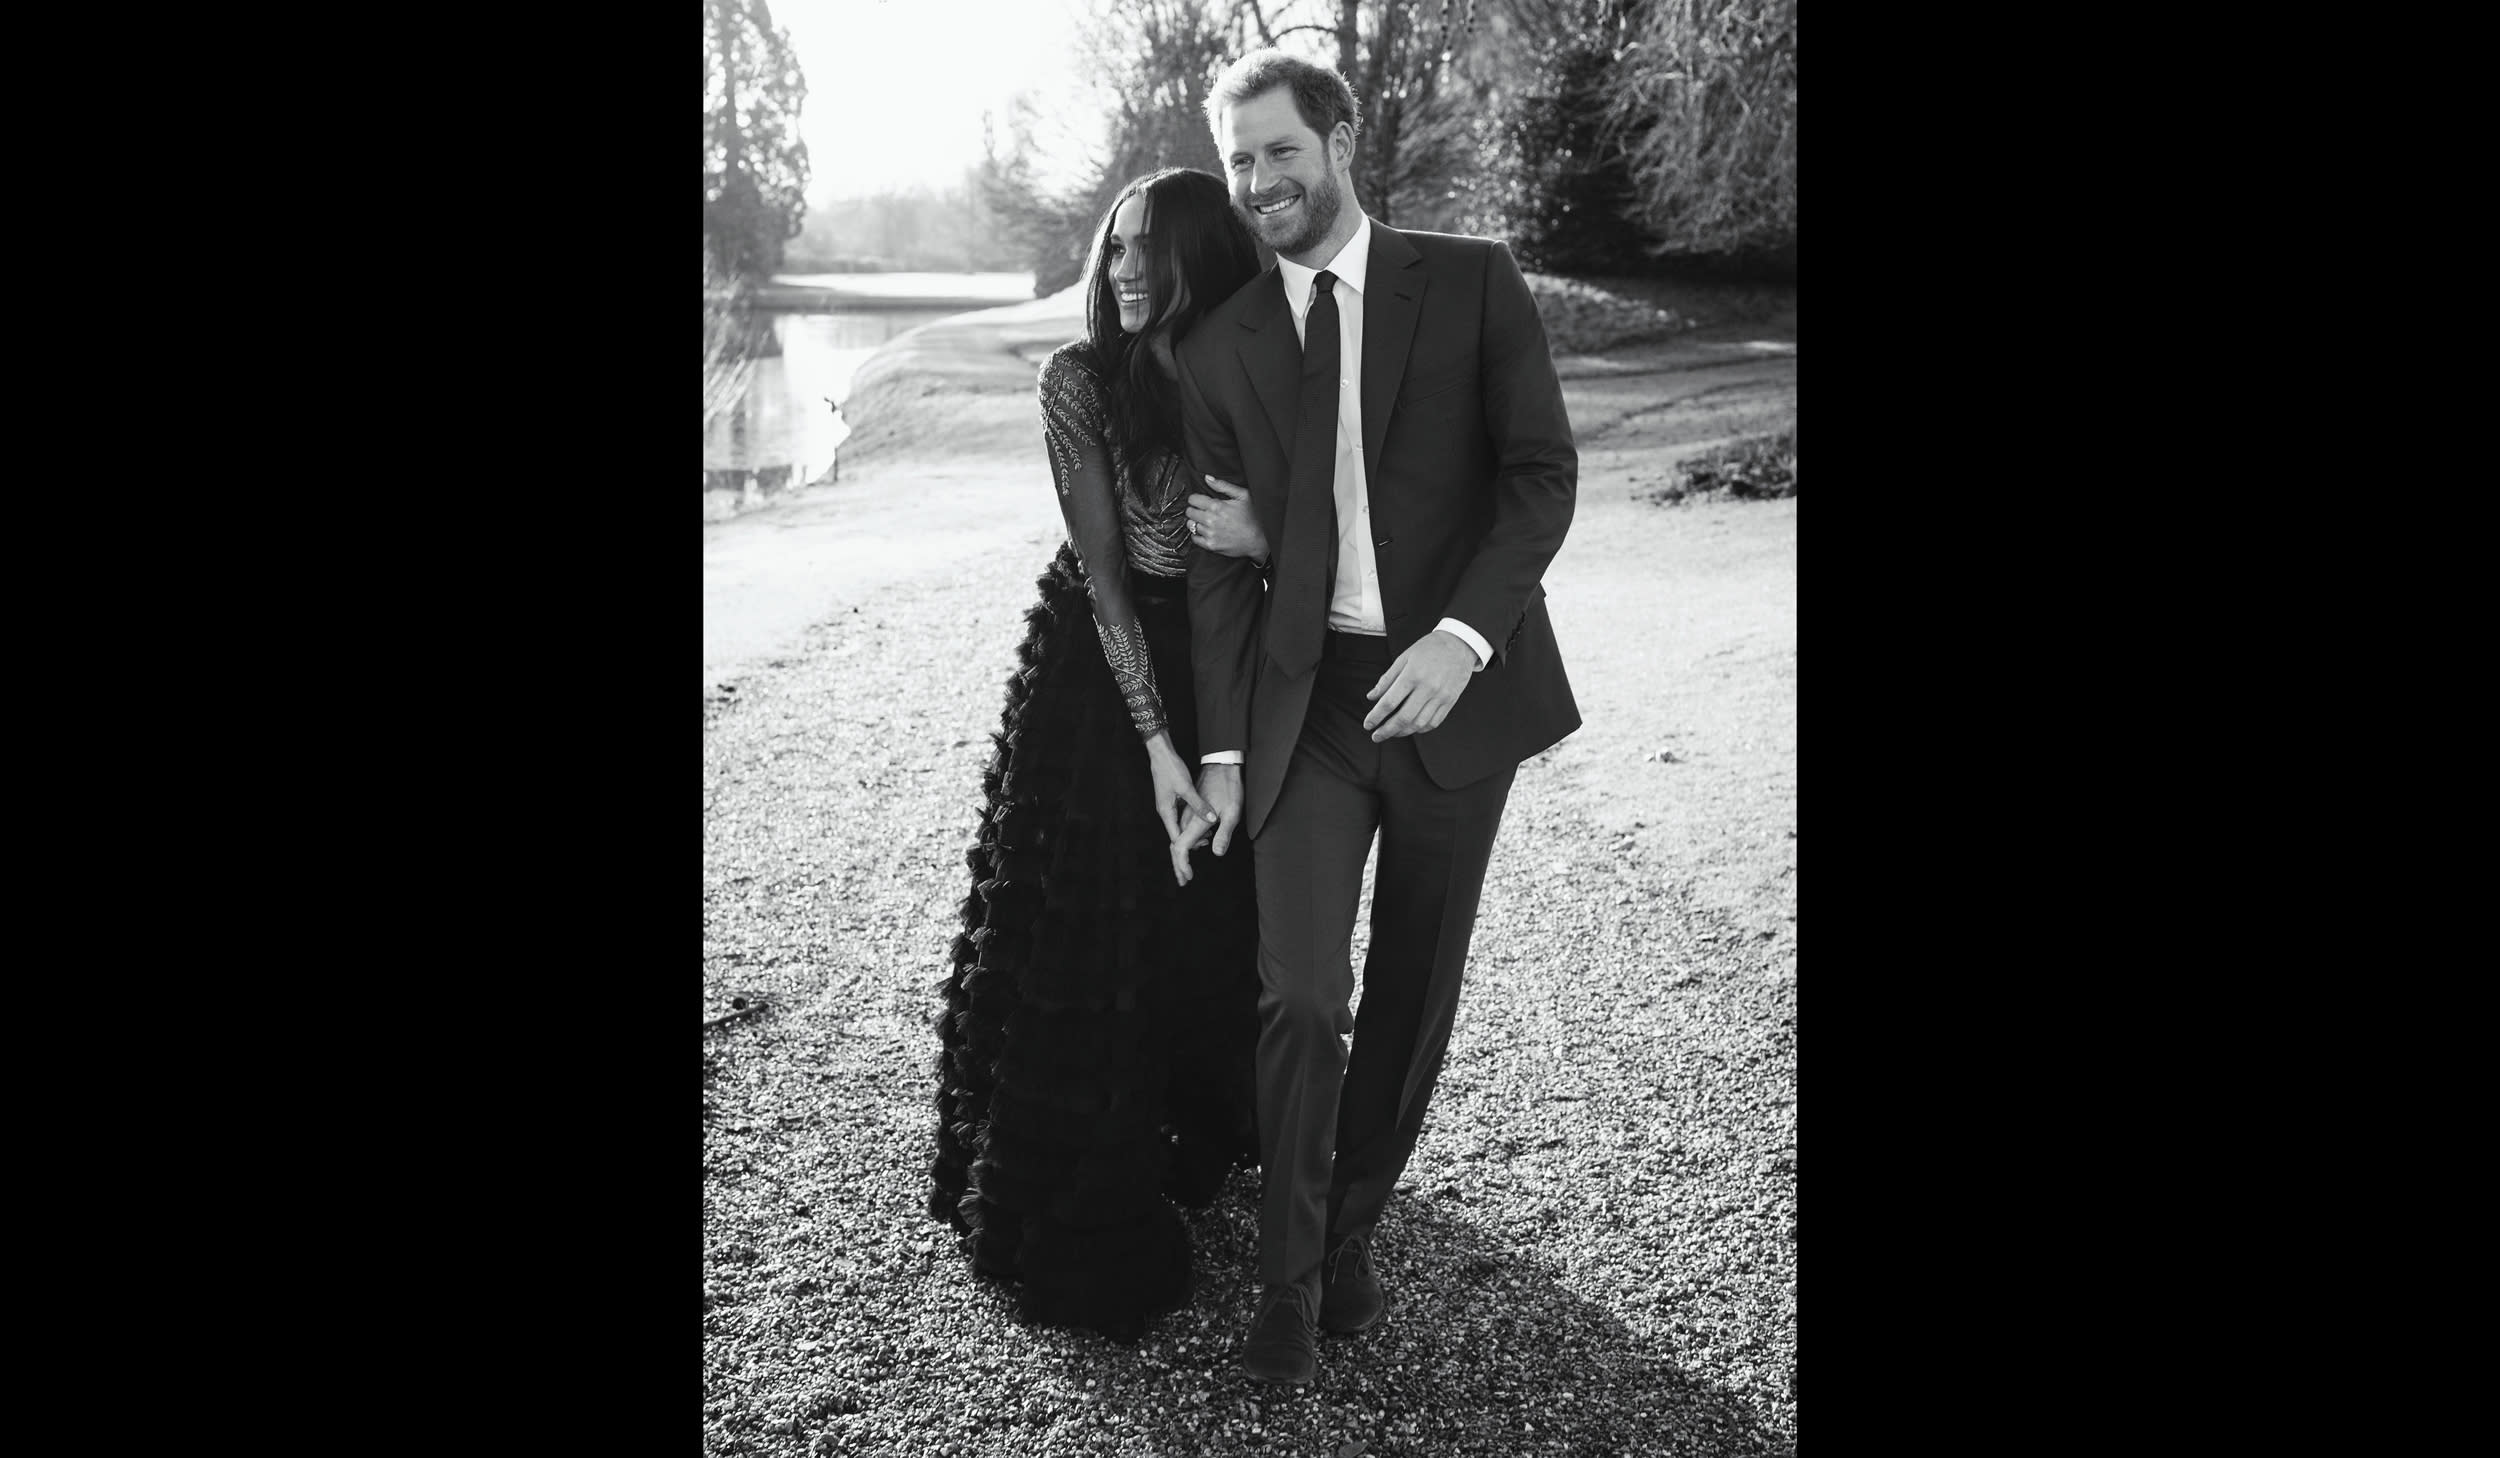 In this photo released by Kensington Palace on Thursday, Dec. 21, 2017, Britain's Prince Harry and Meghan Markle pose an official engagement photo, at Frogmore House, in Windsor, England. (Alexi Lubomirski via AP)